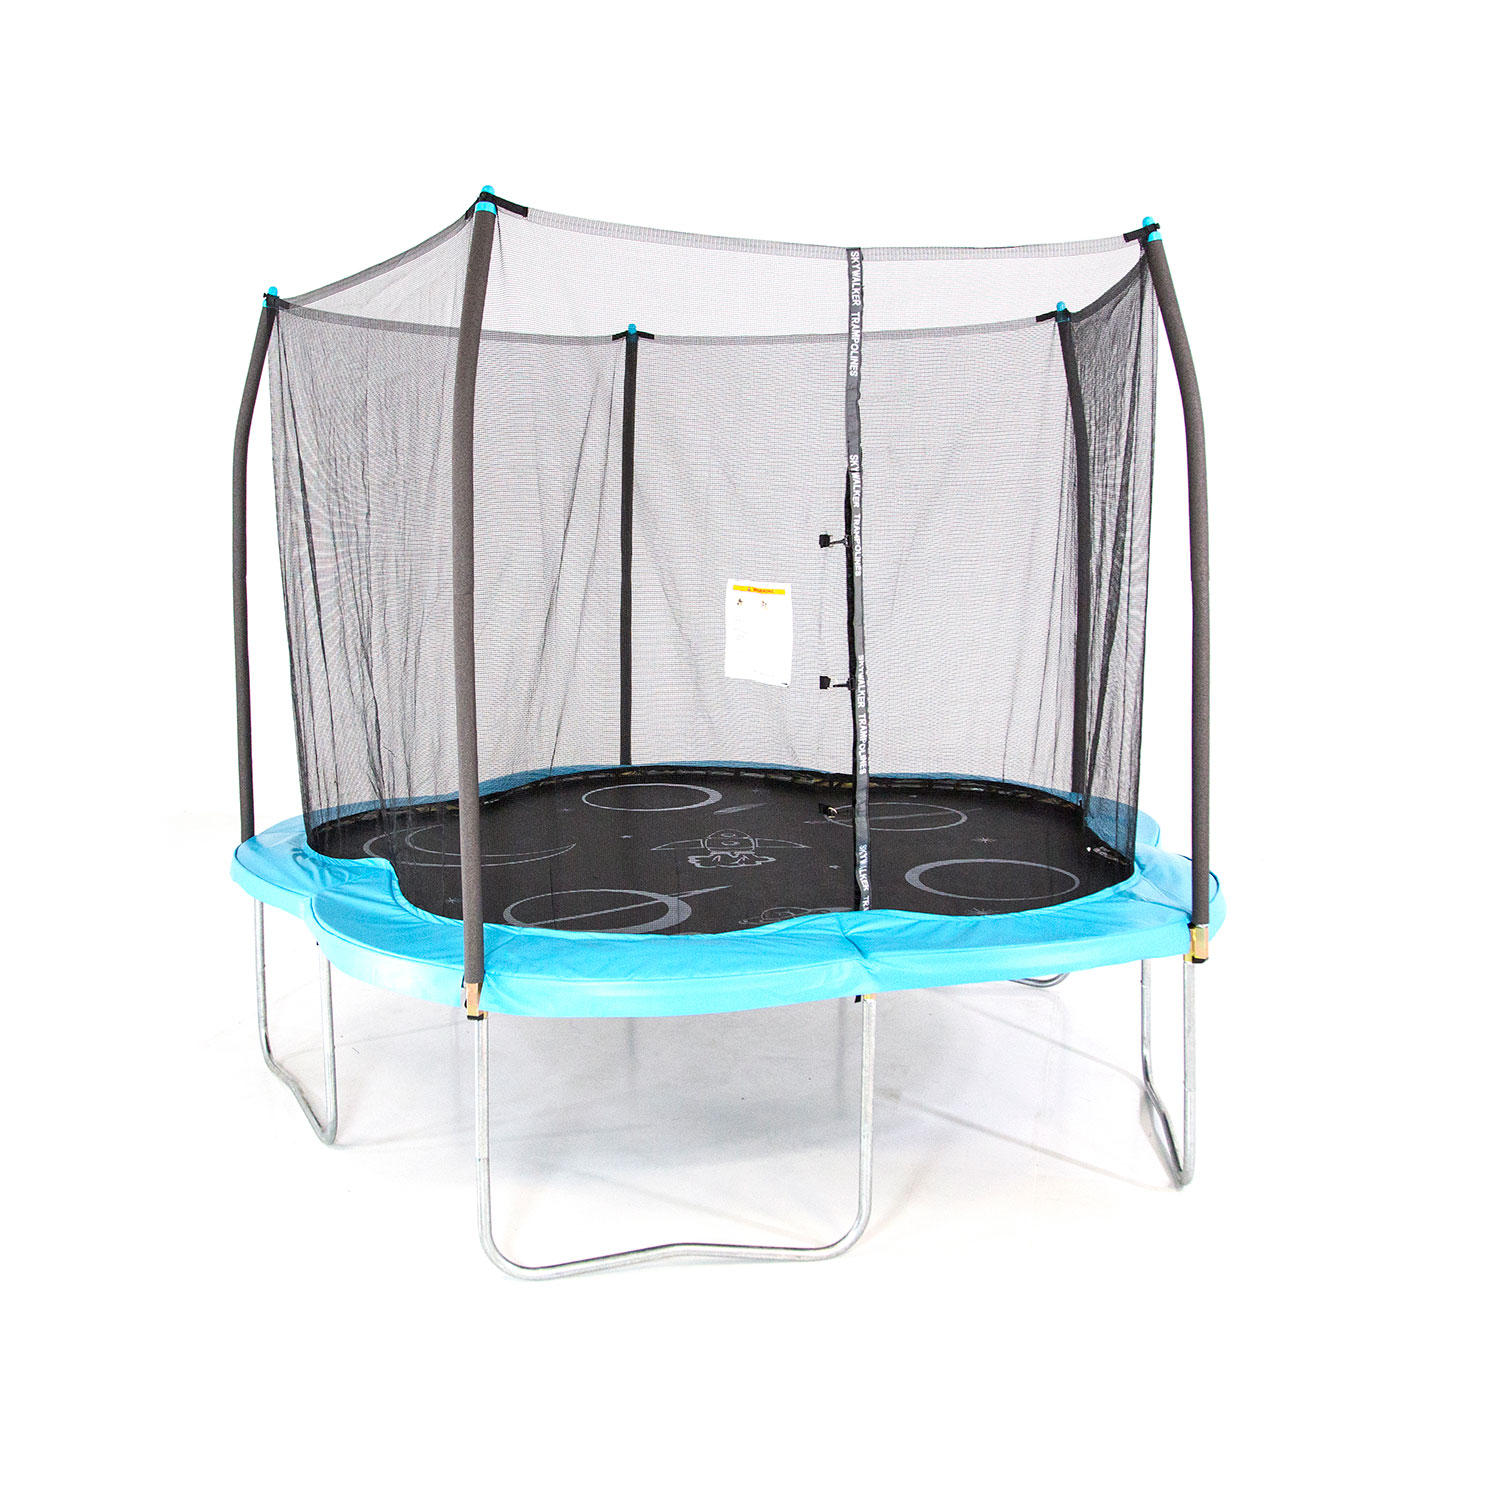 Skywalker Trampolines 11 Adventure Arena Trampoline with Enclosure